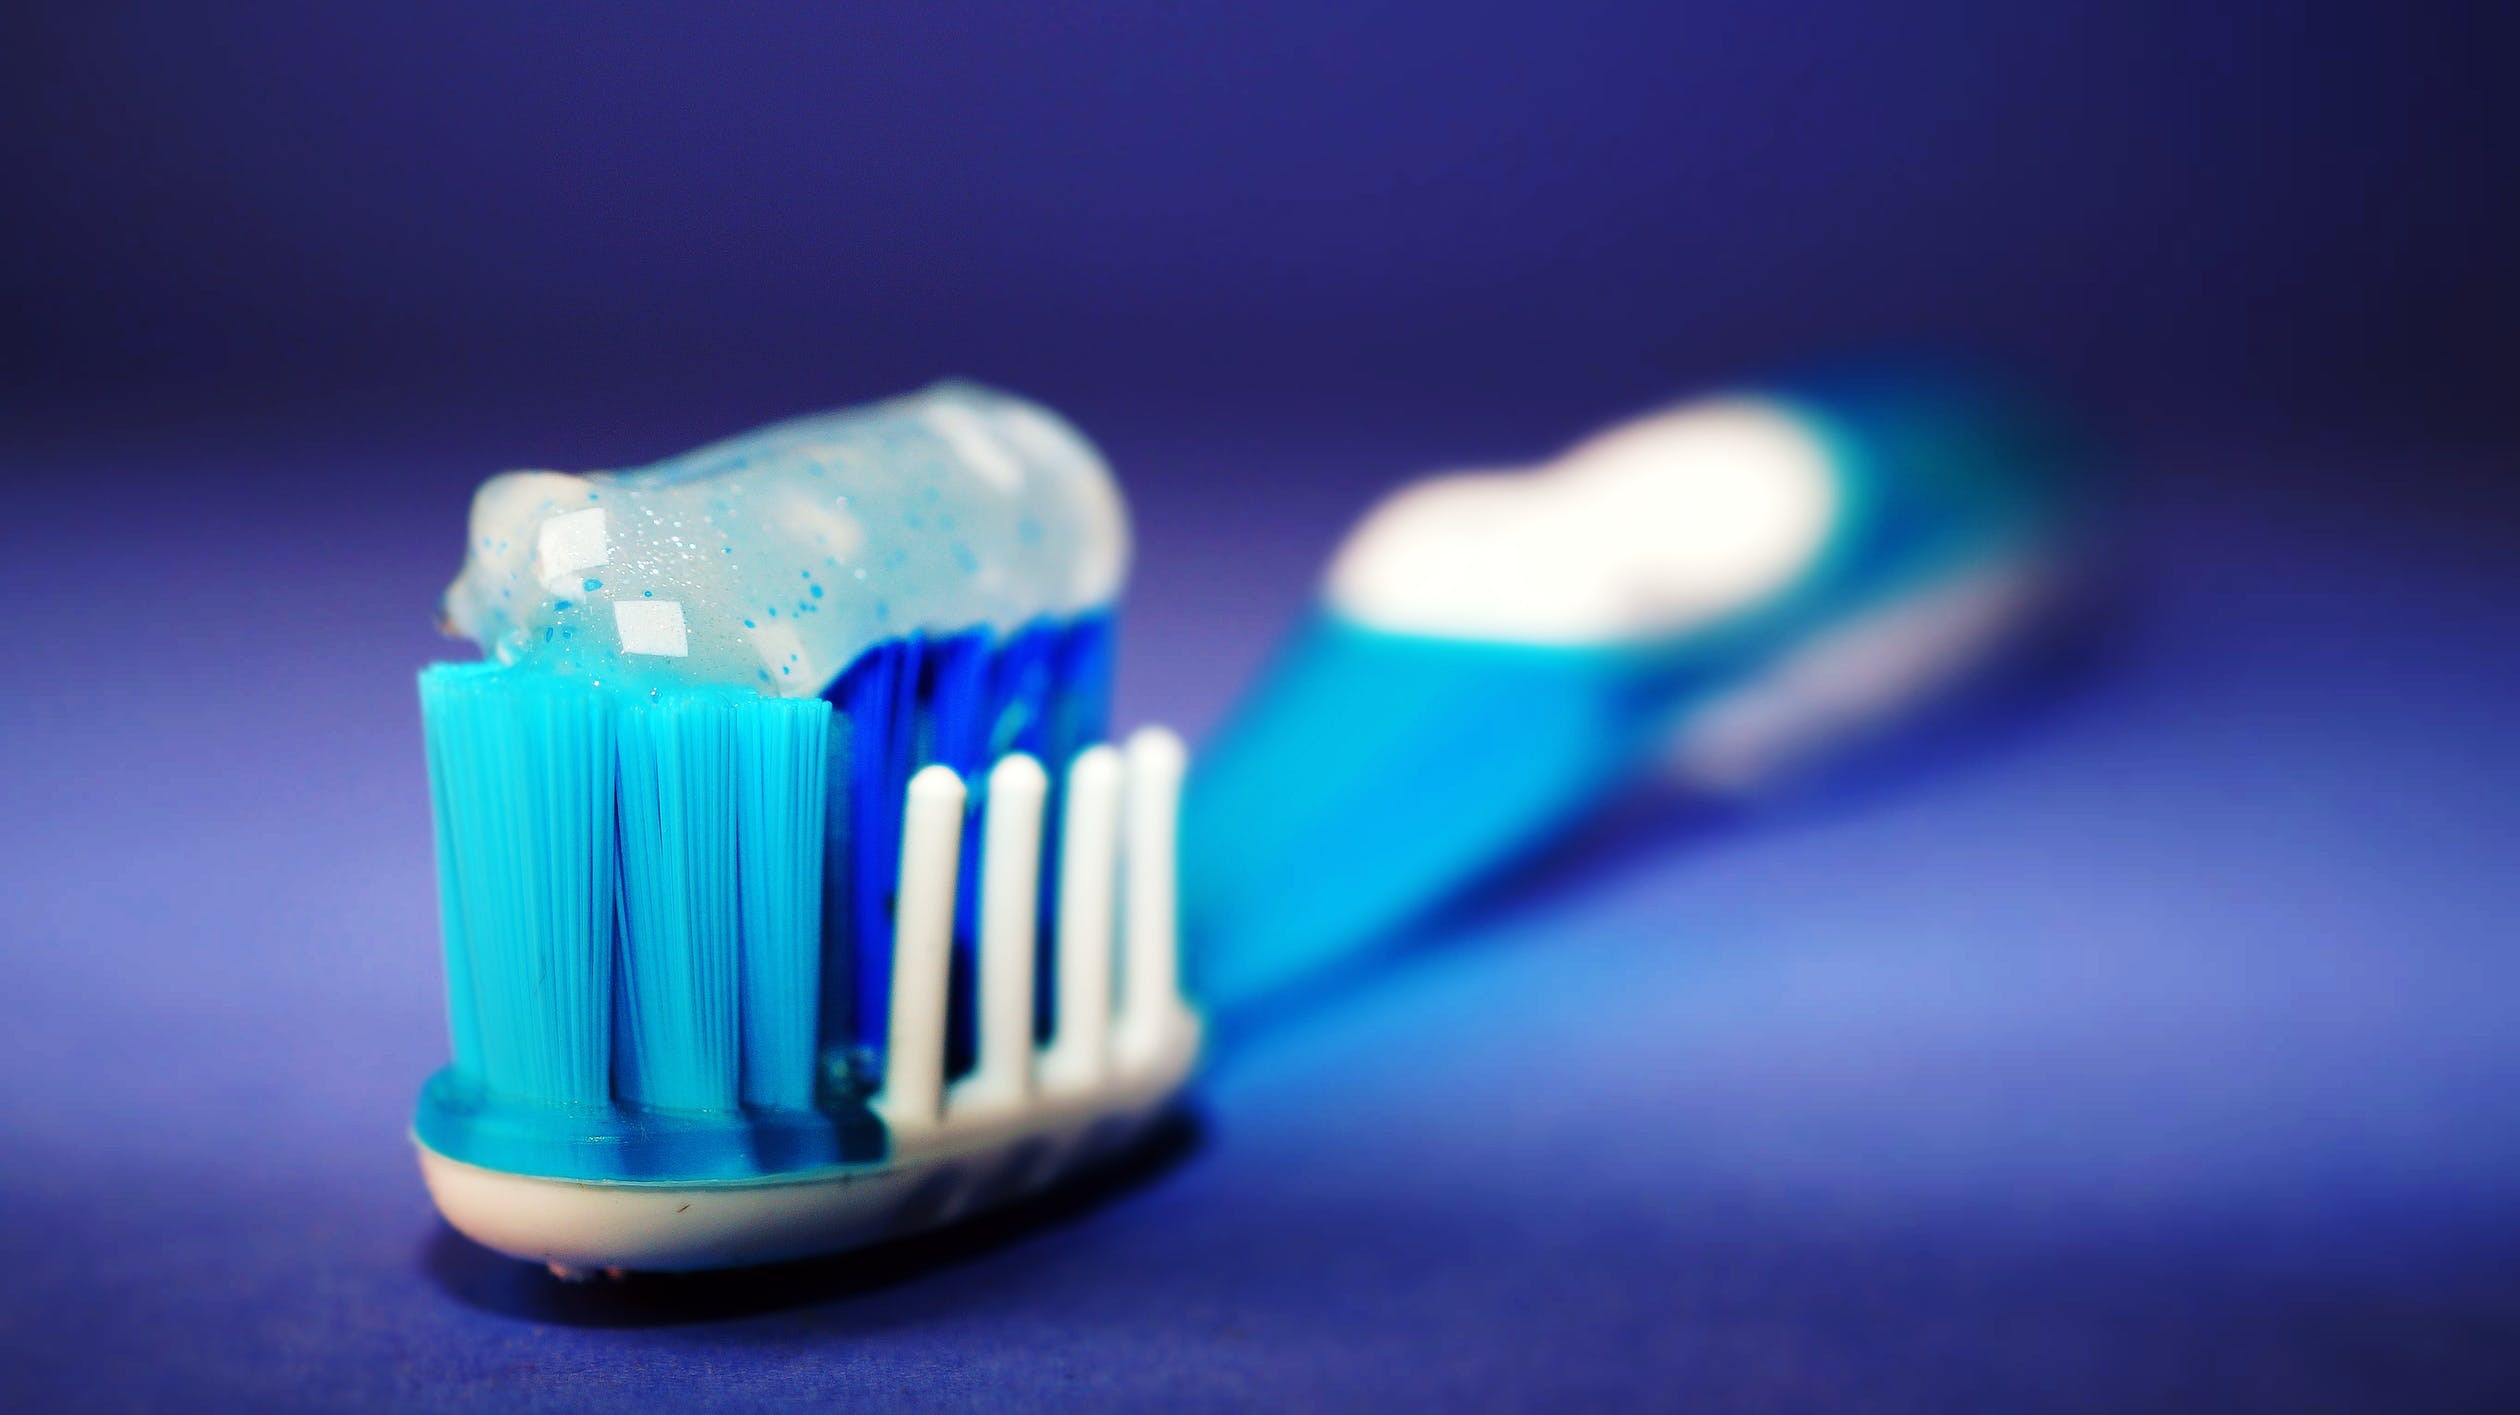 A toothbrush with toothpaste. A toothbrush is a great first step for oral health